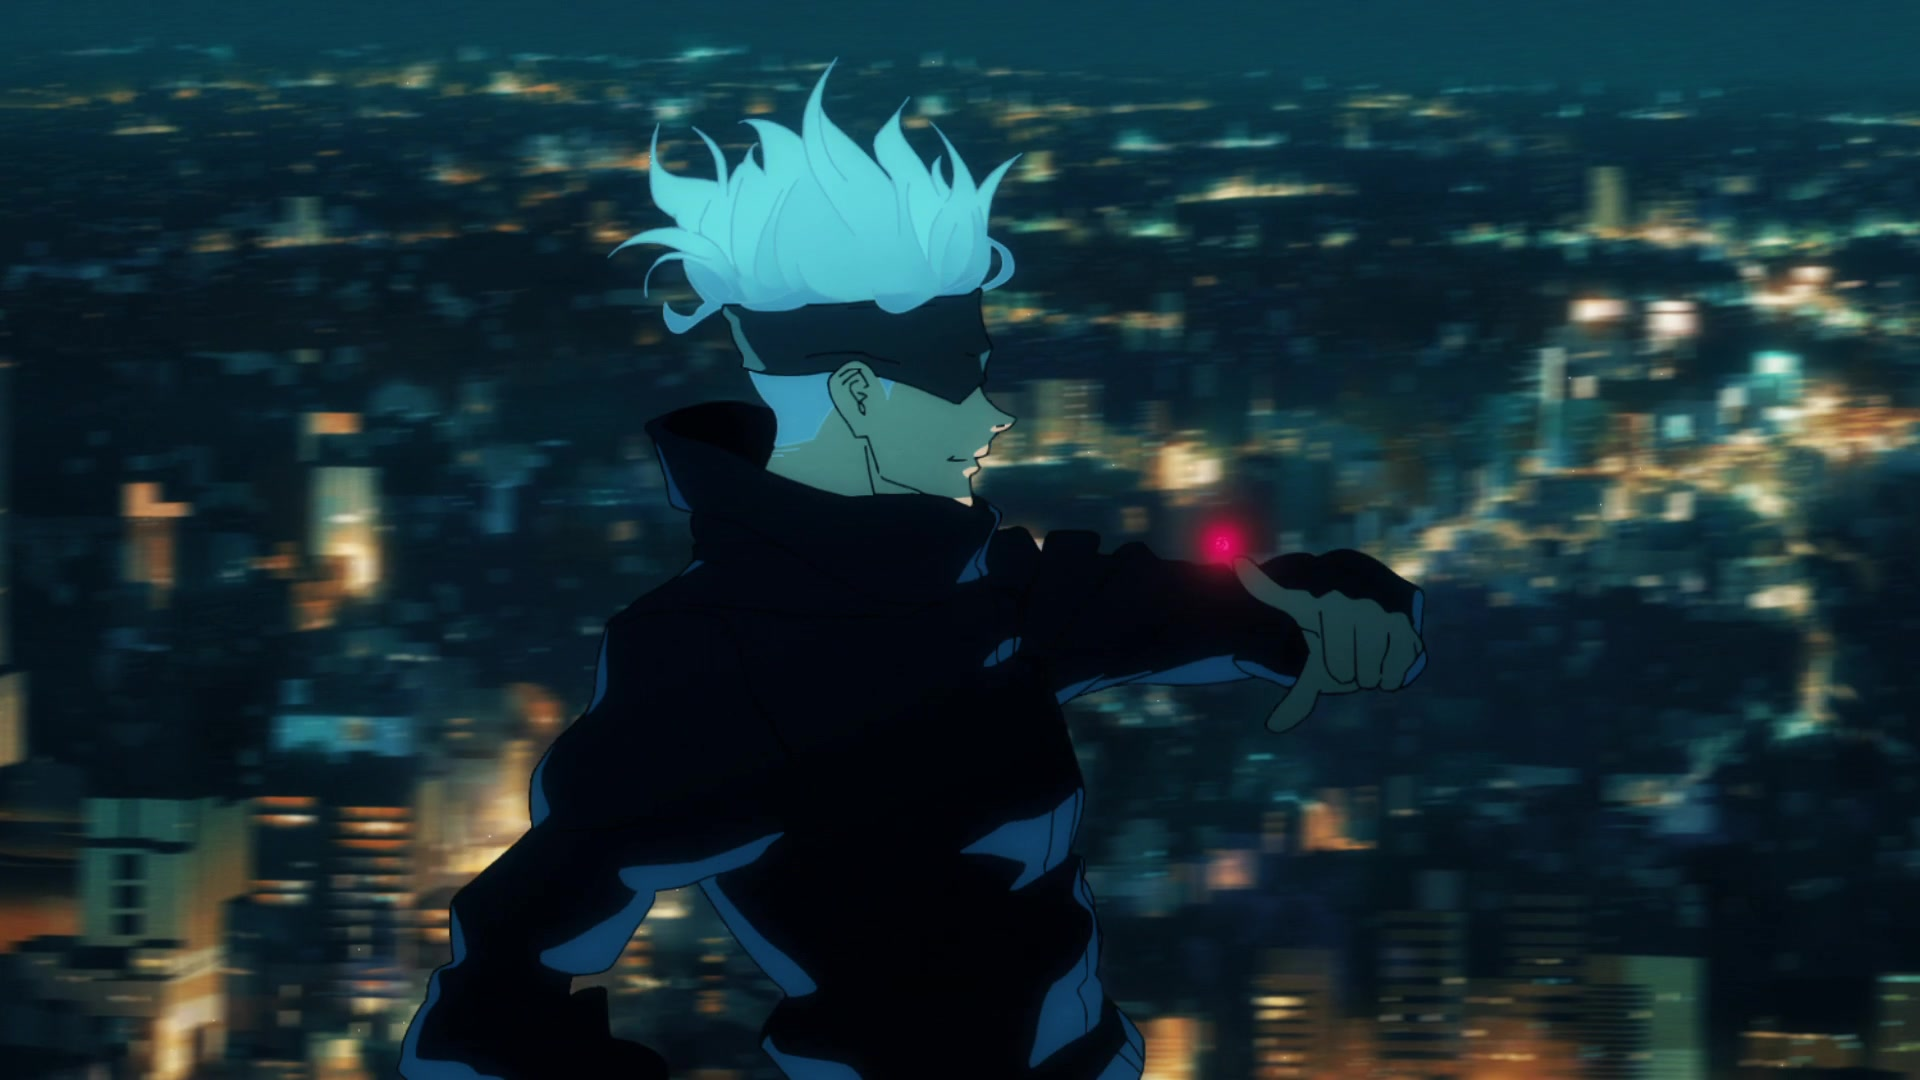 Featured image for Jujutsu Kaisen episode 1 anime review: an electrifying introduction